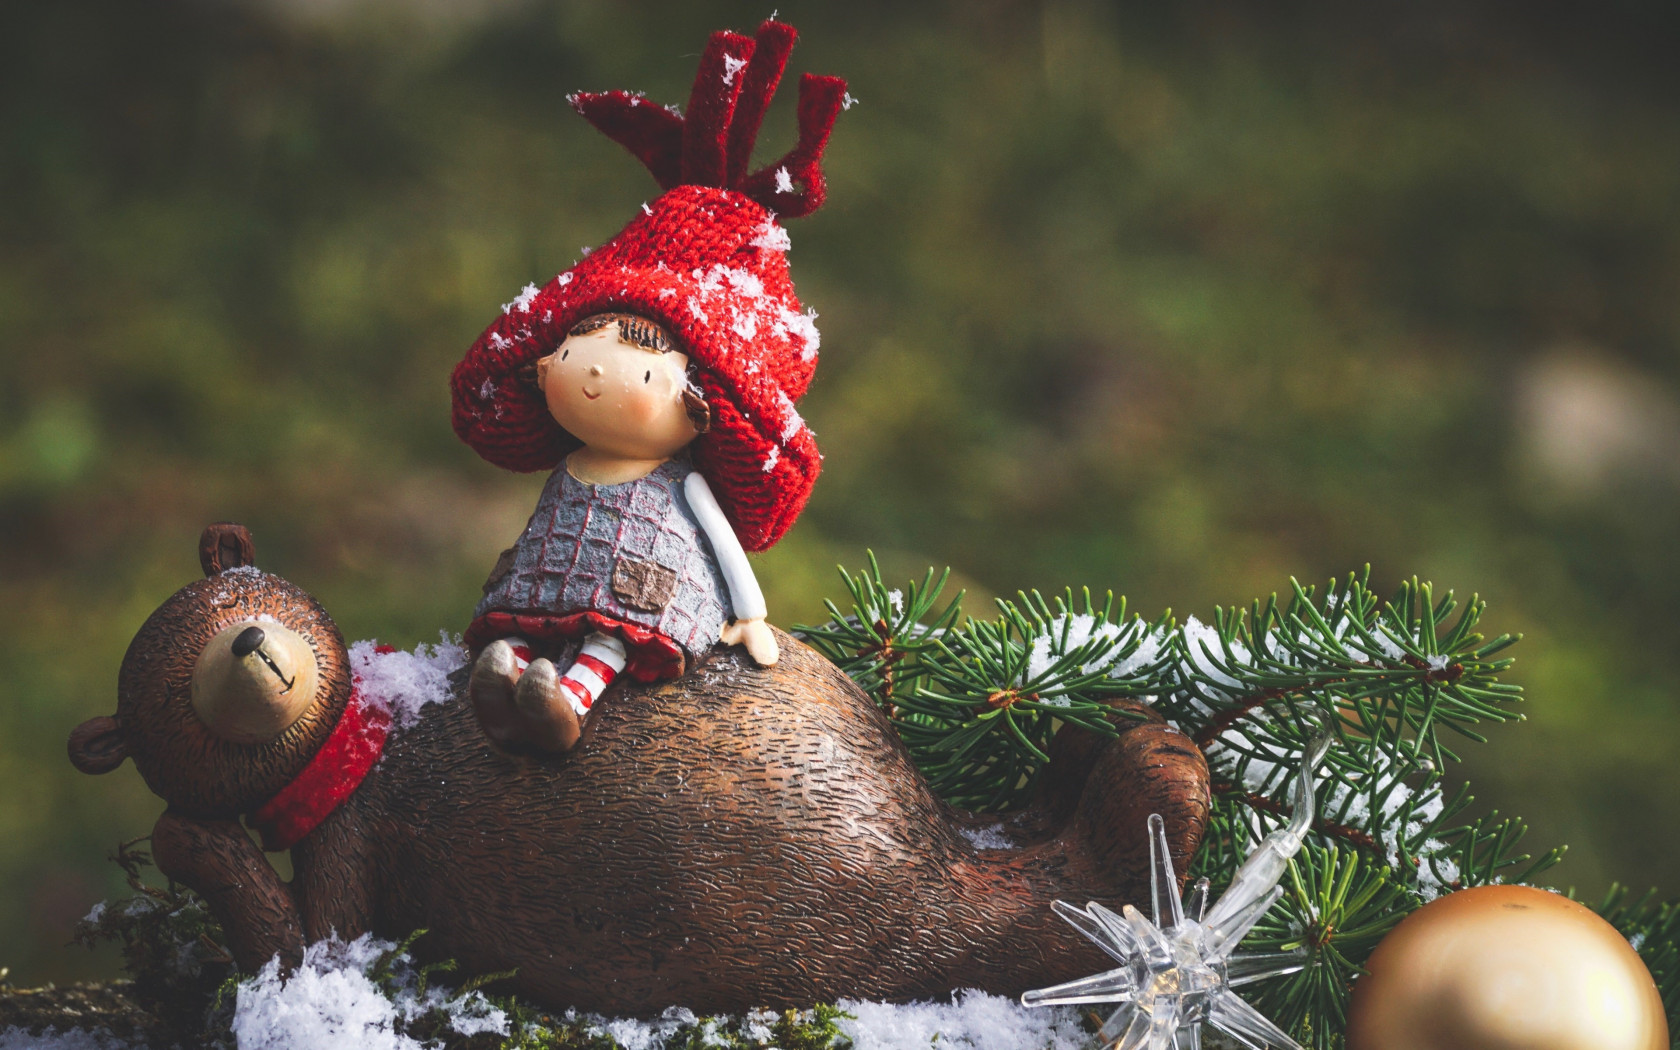 Cute Christmas decoration wallpaper 1680x1050